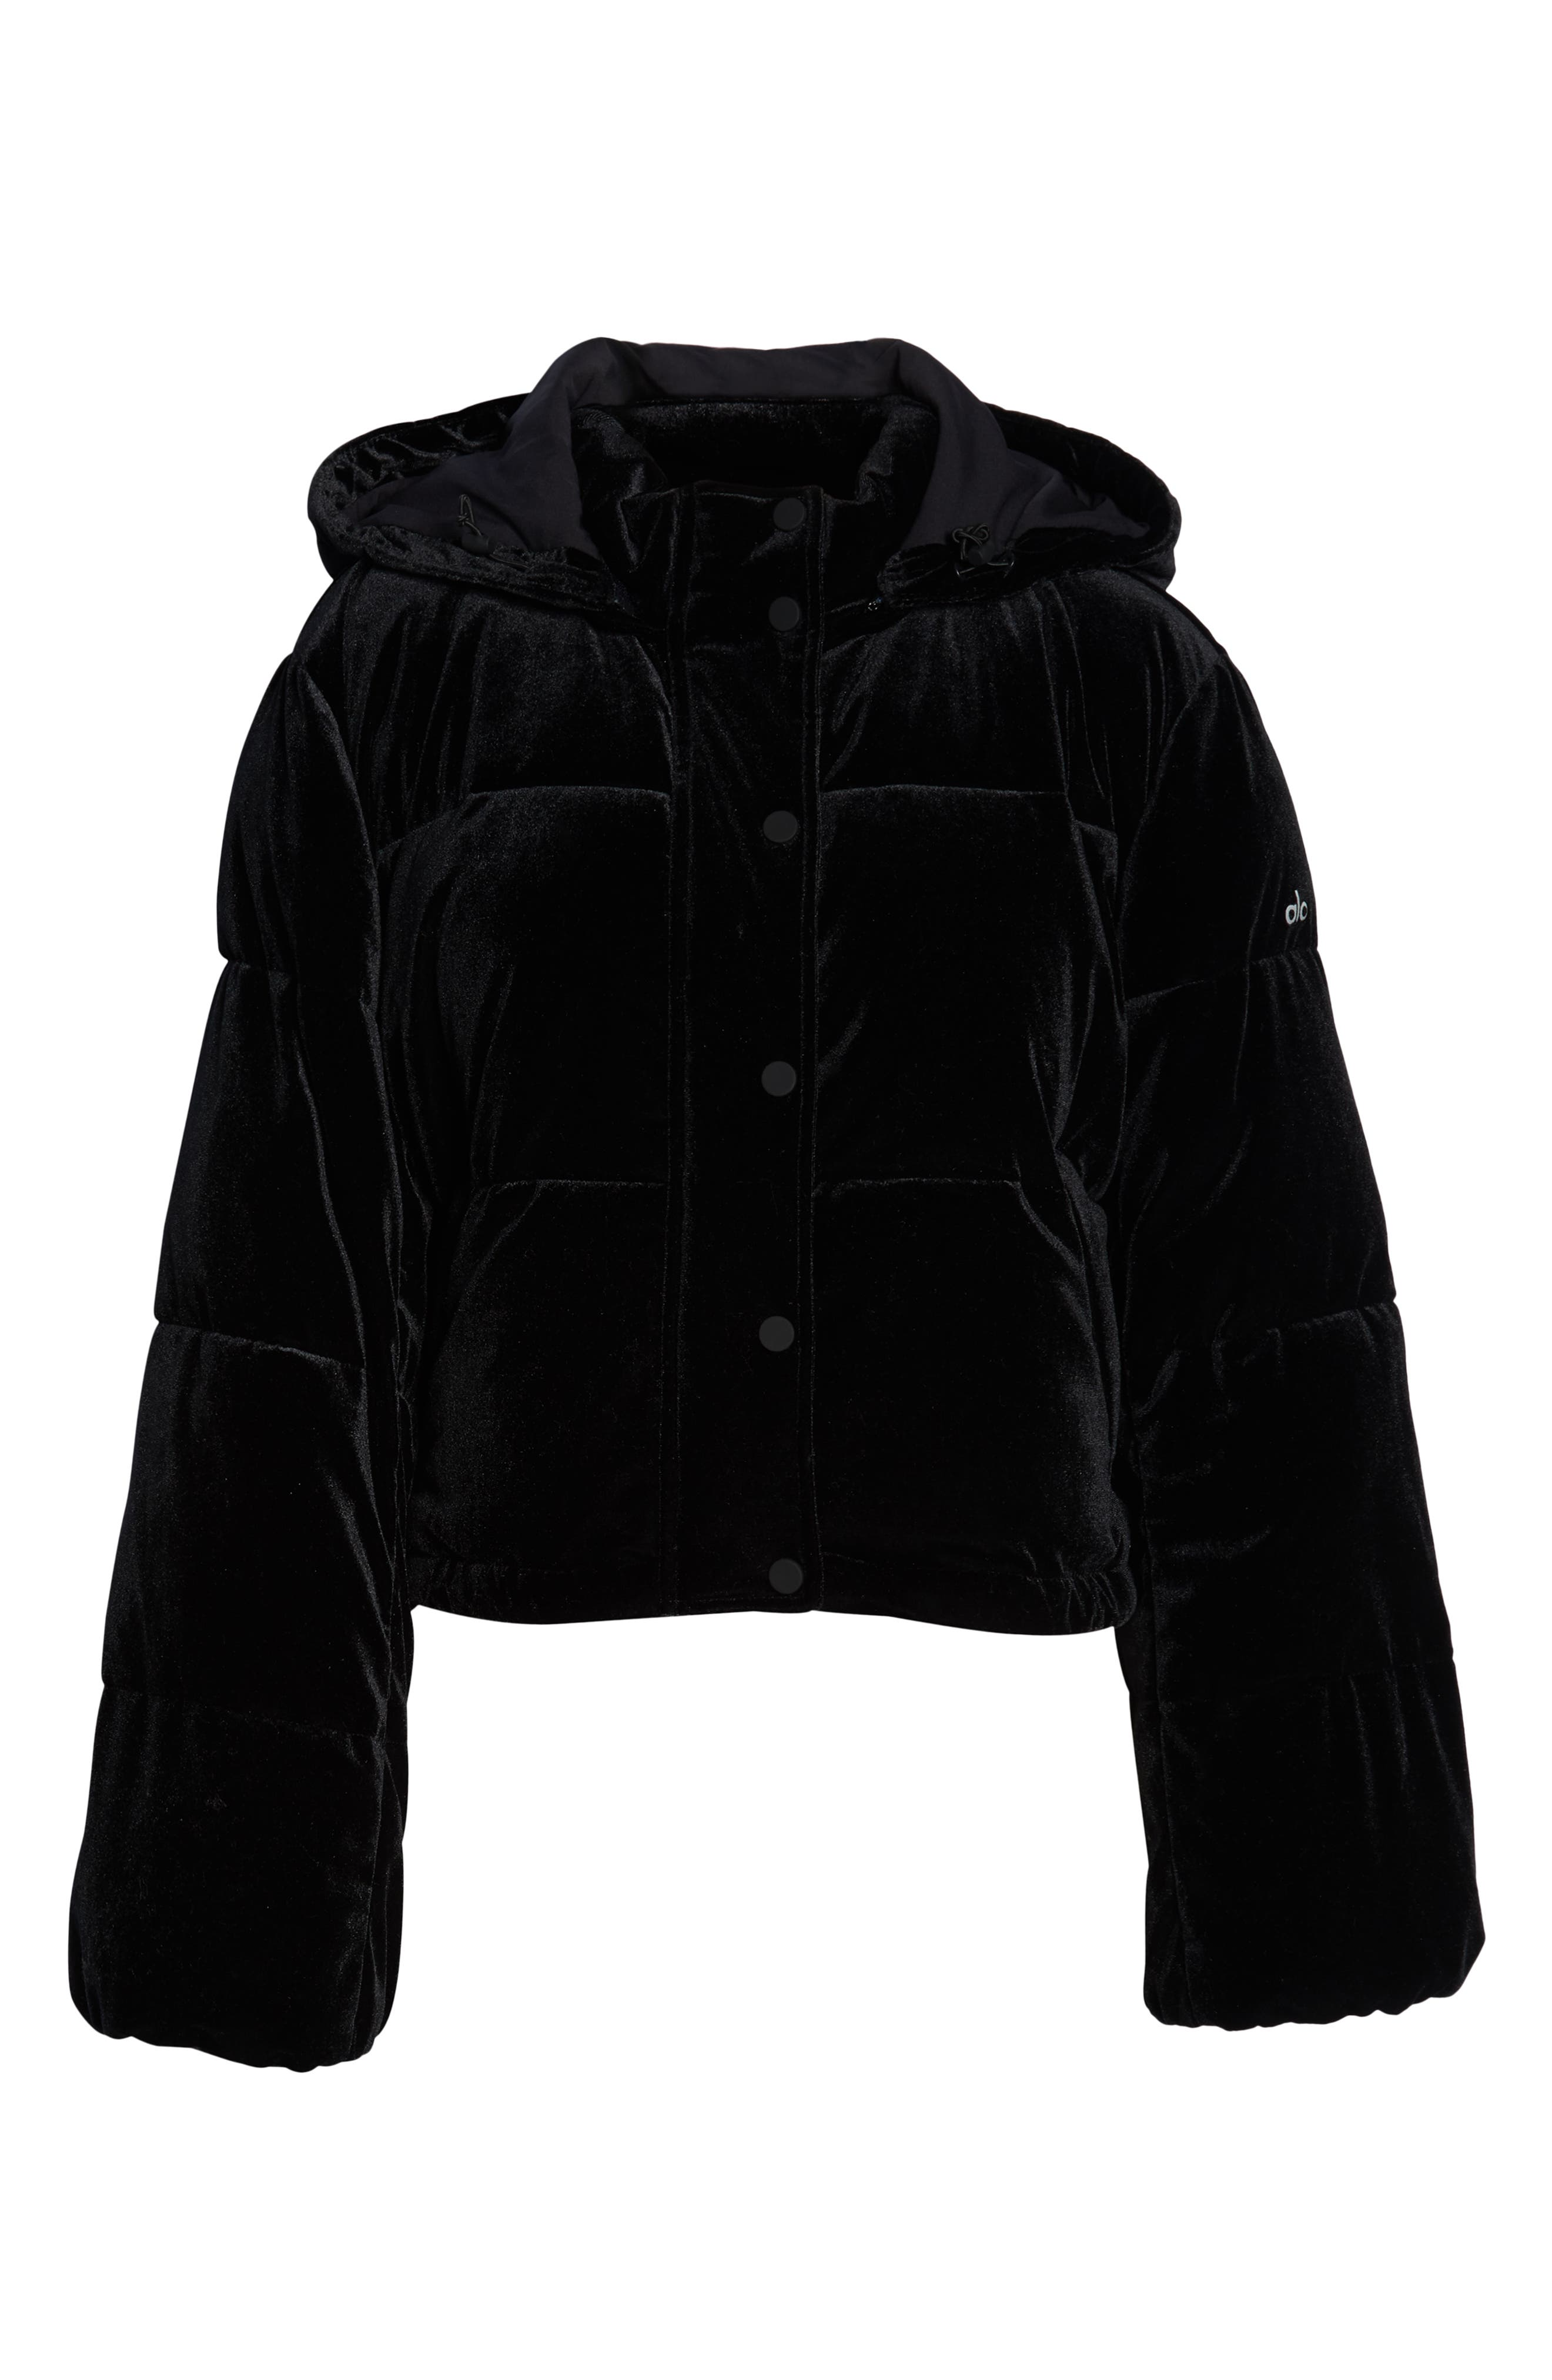 ALO, Velvet Puffer Jacket, Alternate thumbnail 6, color, 001